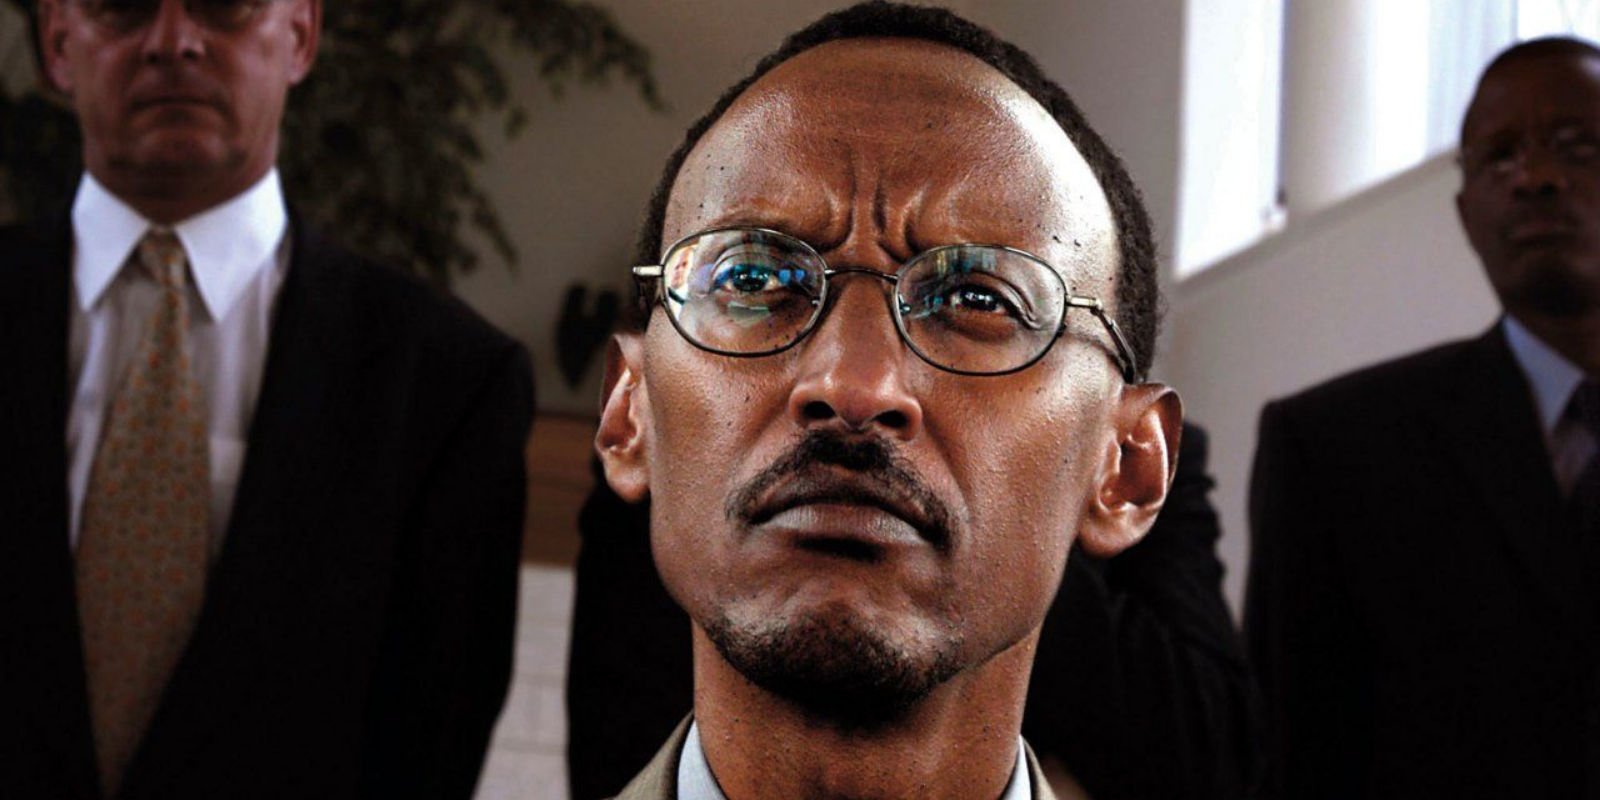 Paul Kagame is the president of which country?